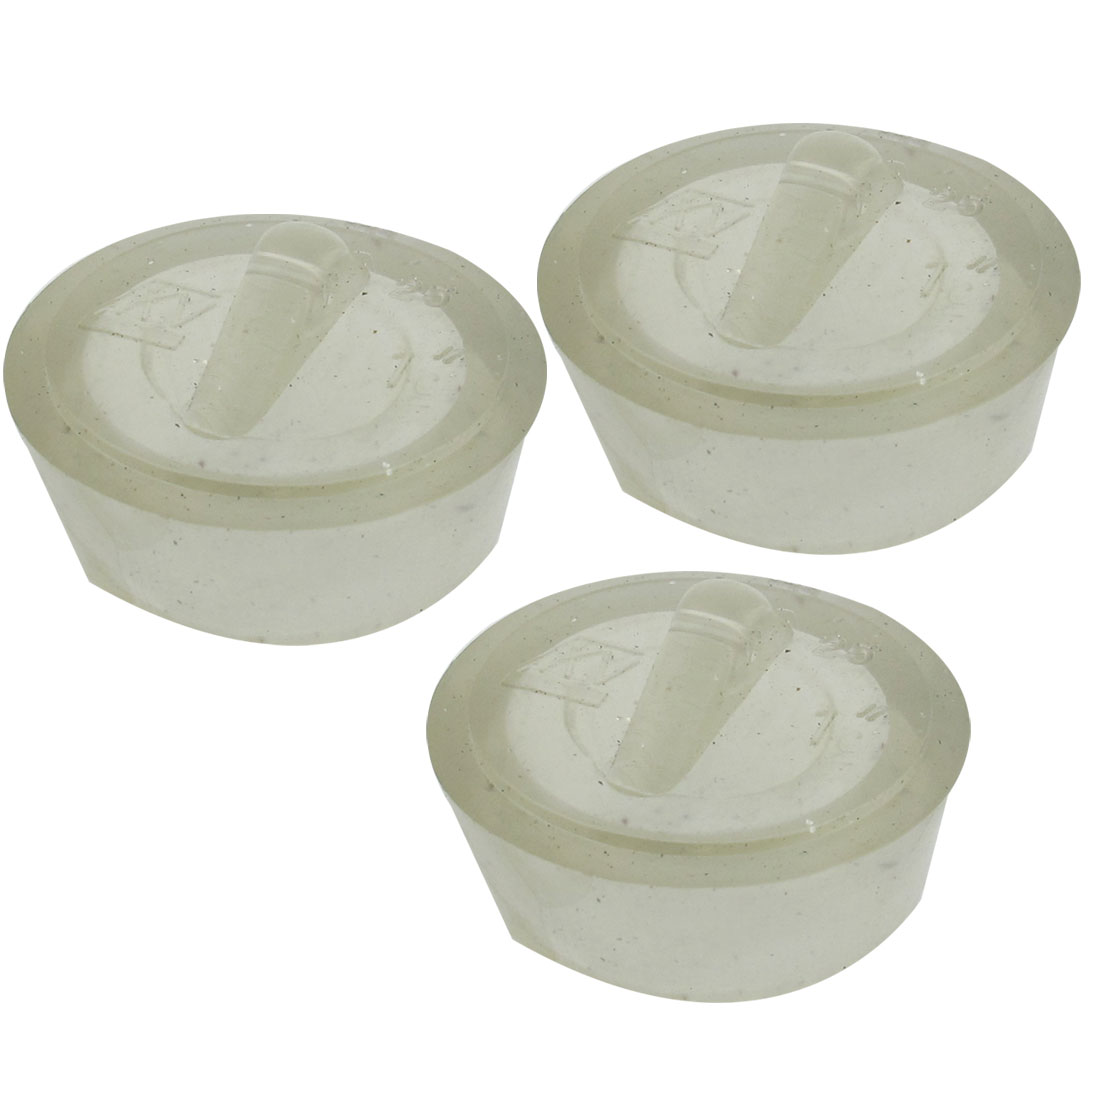 36mm Diameter Water Sink Strainer Clear Rubber Disposal Stopper 3 Pcs